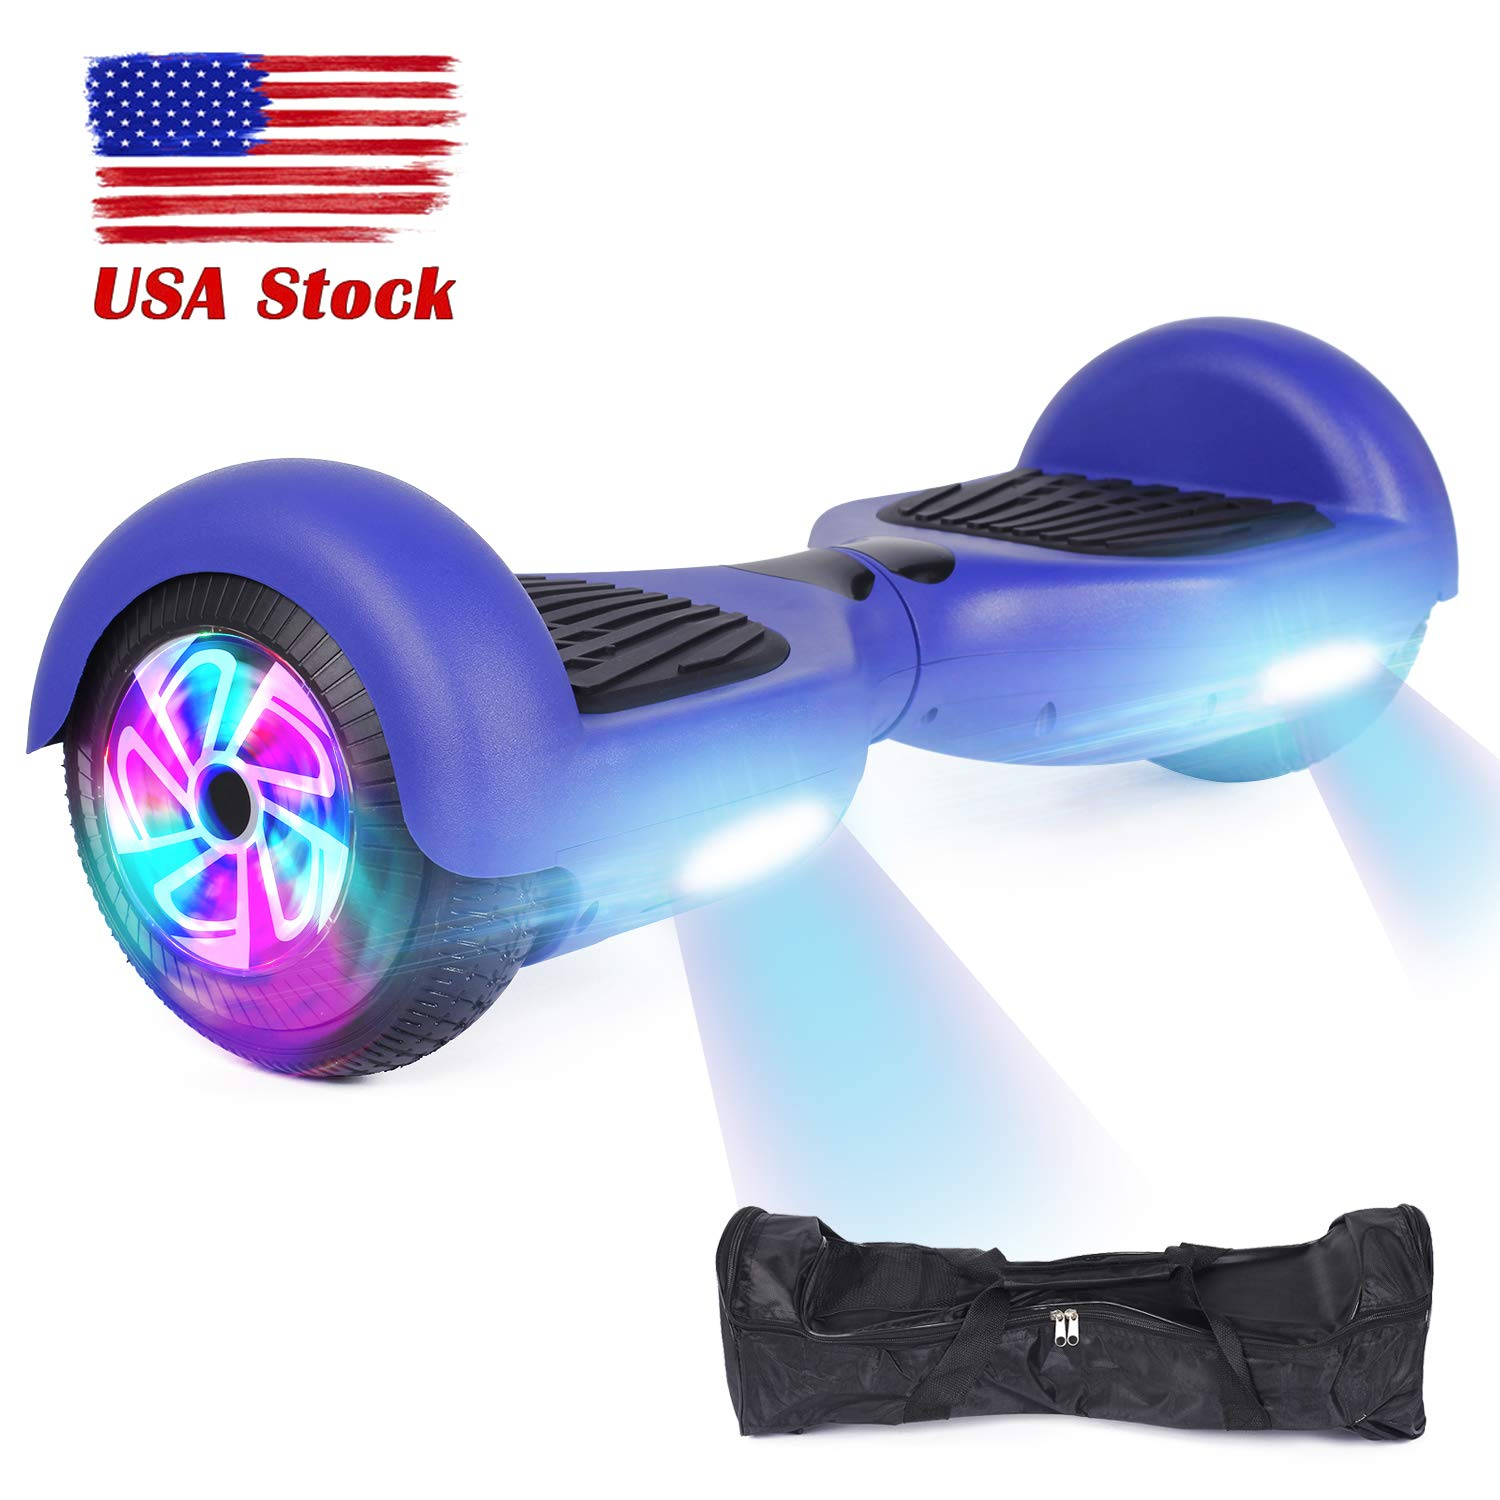 YHR Hoverboard Flashing Wheel Hover Board 6.5'' Self Balancing Scooter -UL Certified with Free Bag-Blue